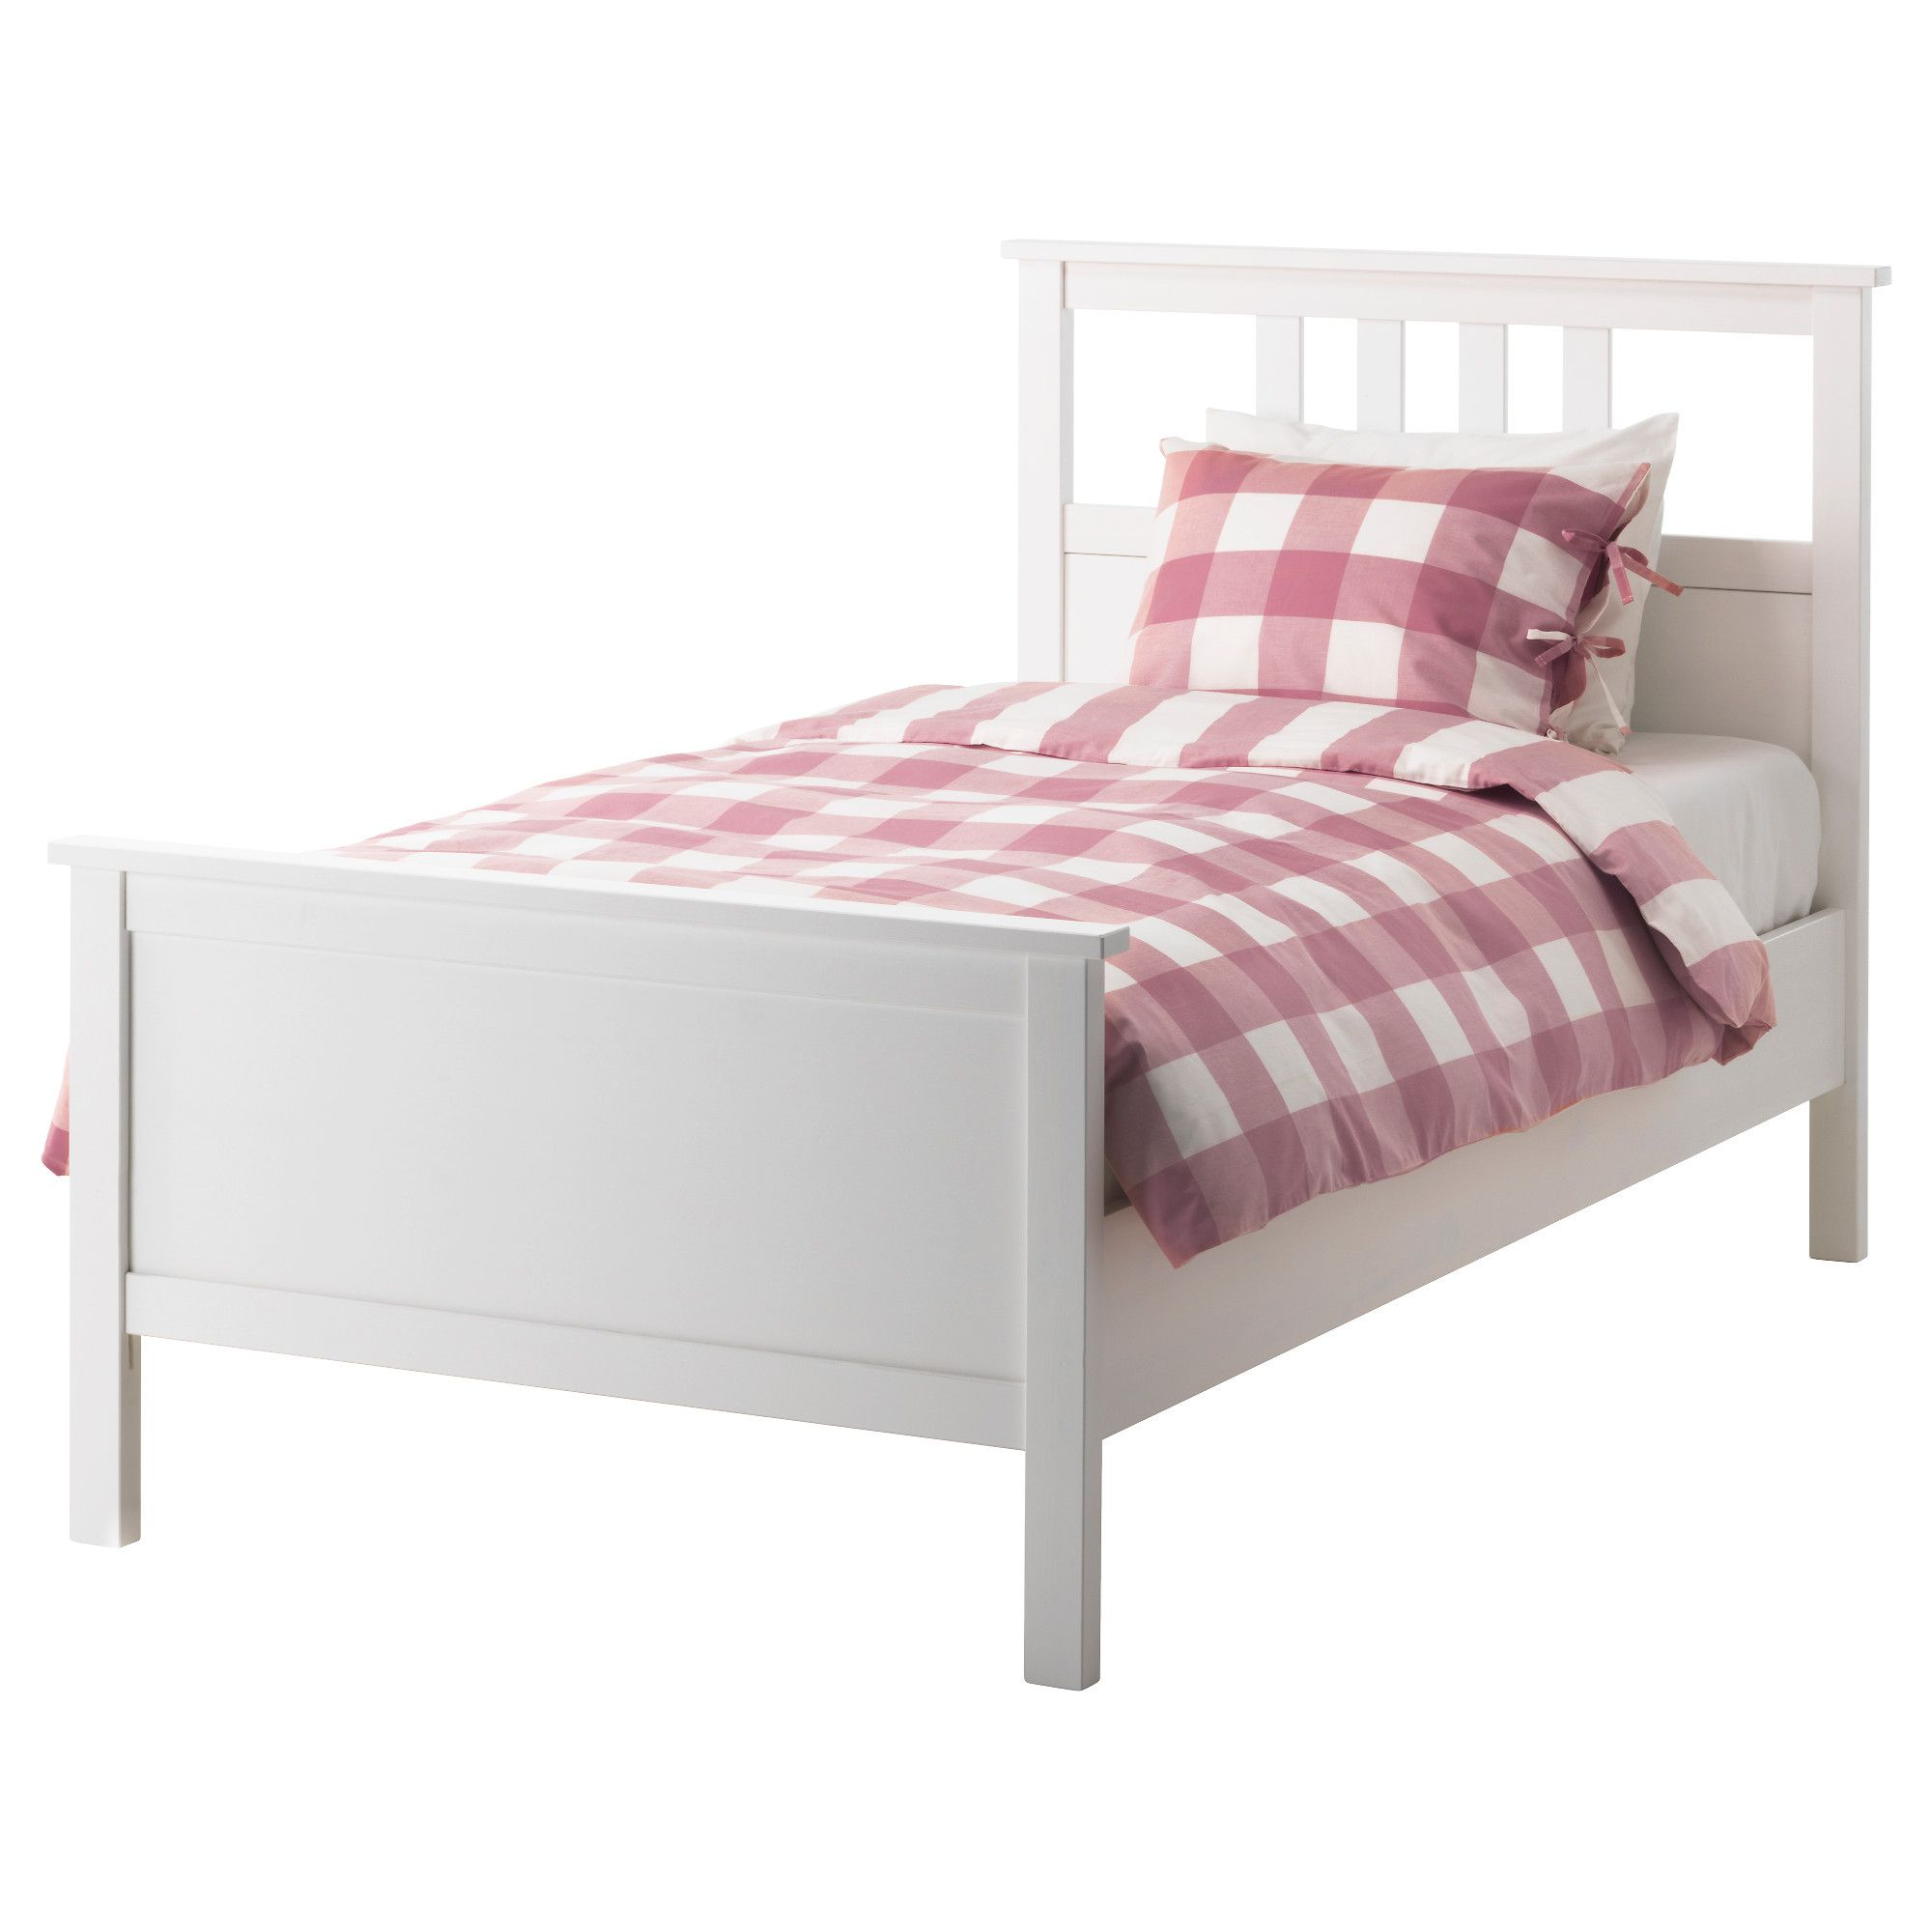 Ikea Hemnes Bed Frame Lur 246 Y Made Of Solid Wood